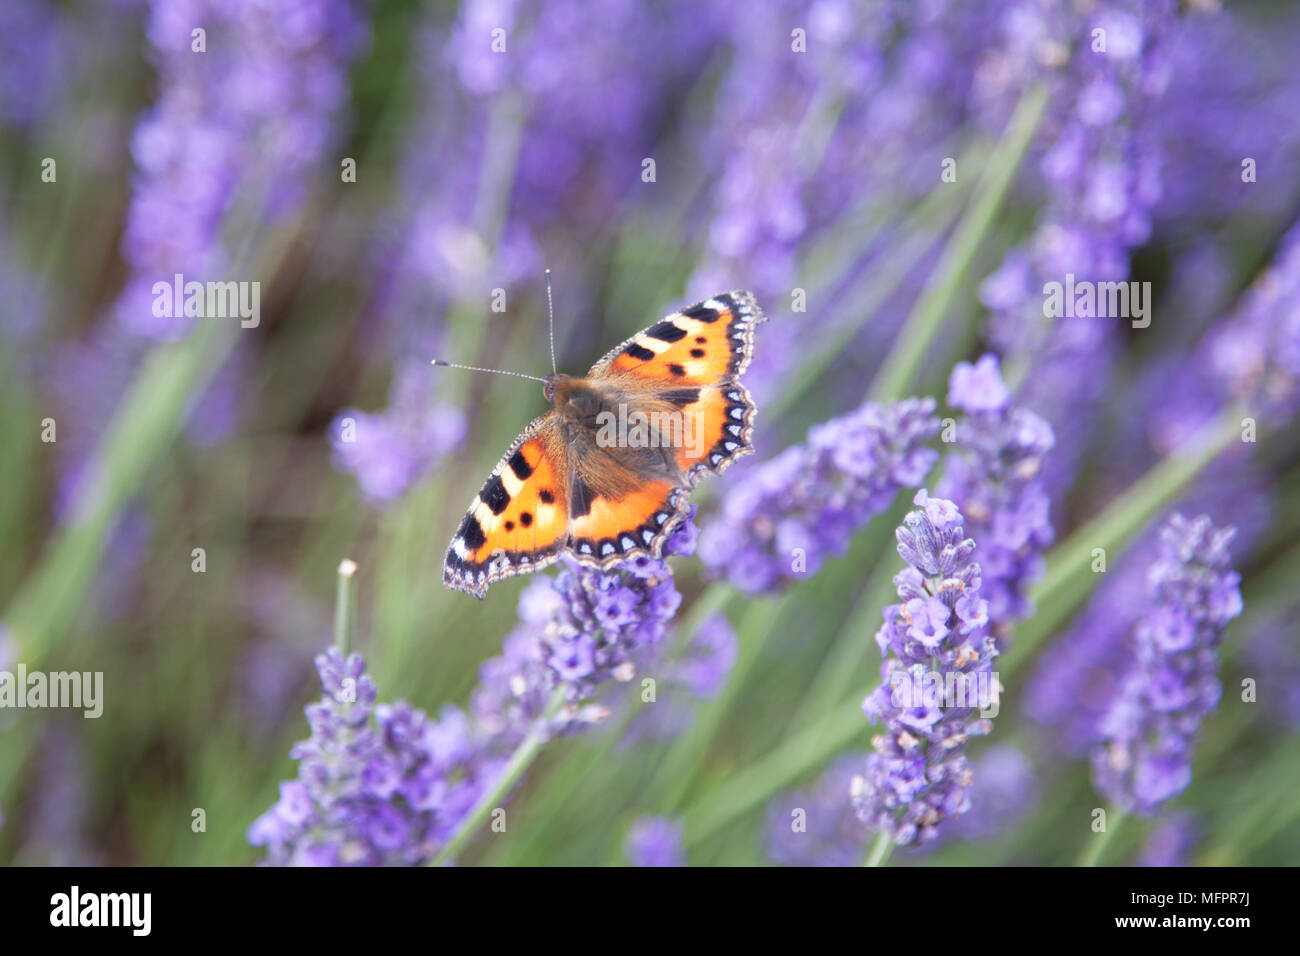 A small tortoiseshell butterfly (Aglais urticate), a common in the English countryside in summertime, perches on a lavender flower. - Stock Image